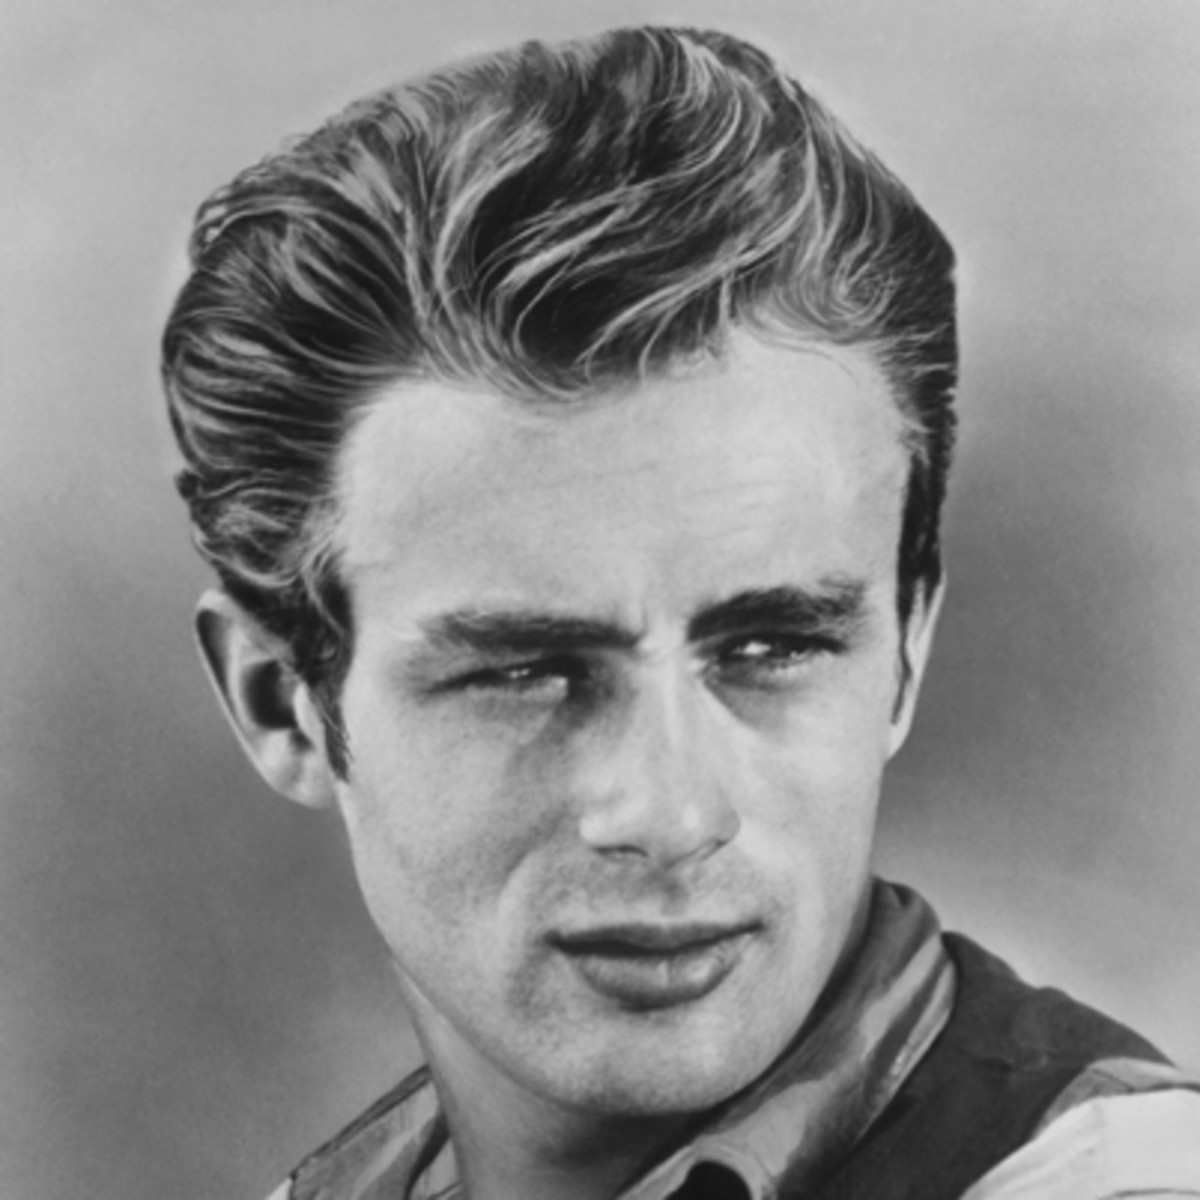 30 septembre 1955 – Le tristement célèbre accident de James Dean